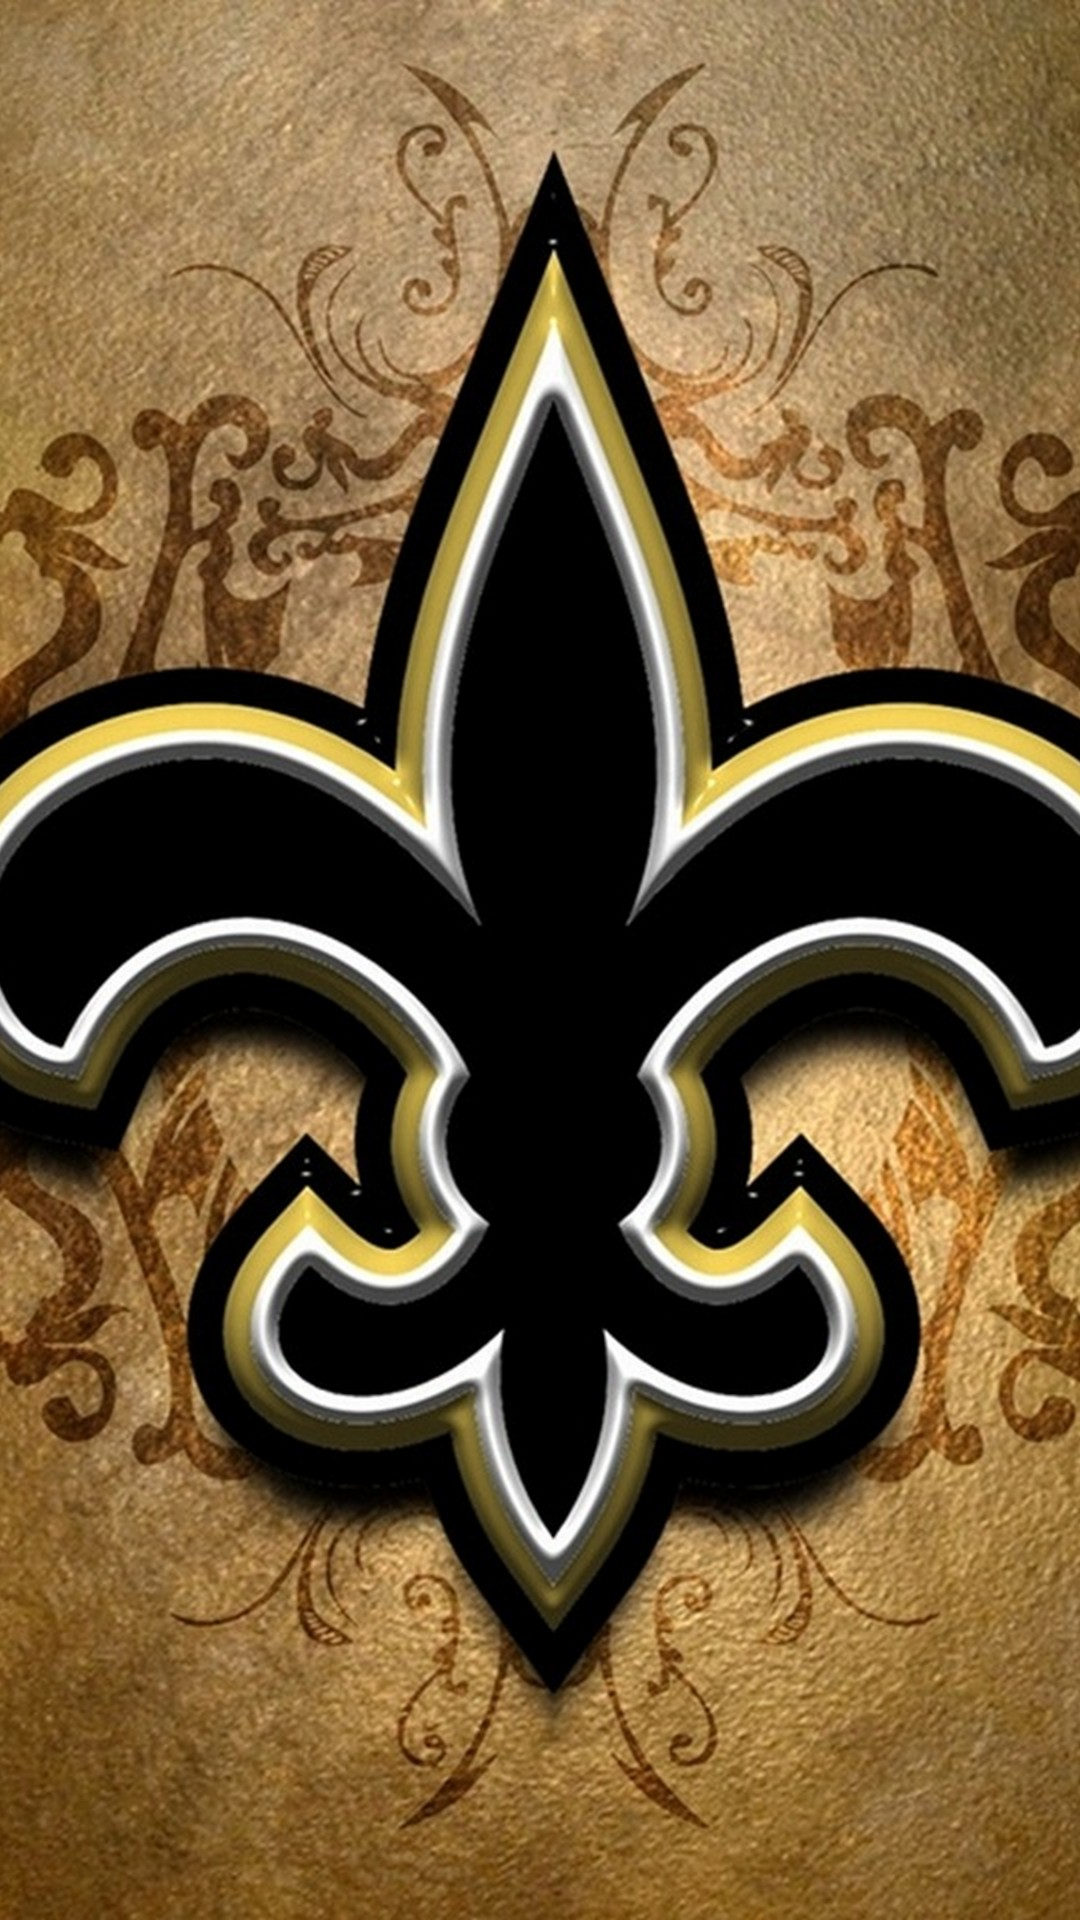 New Orleans Saints iPhone Screensaver with high-resolution 1080x1920 pixel. Donwload and set as wallpaper for your iPhone X, iPhone XS home screen backgrounds, XS Max, XR, iPhone8 lock screen wallpaper, iPhone 7, 6, SE and other mobile devices